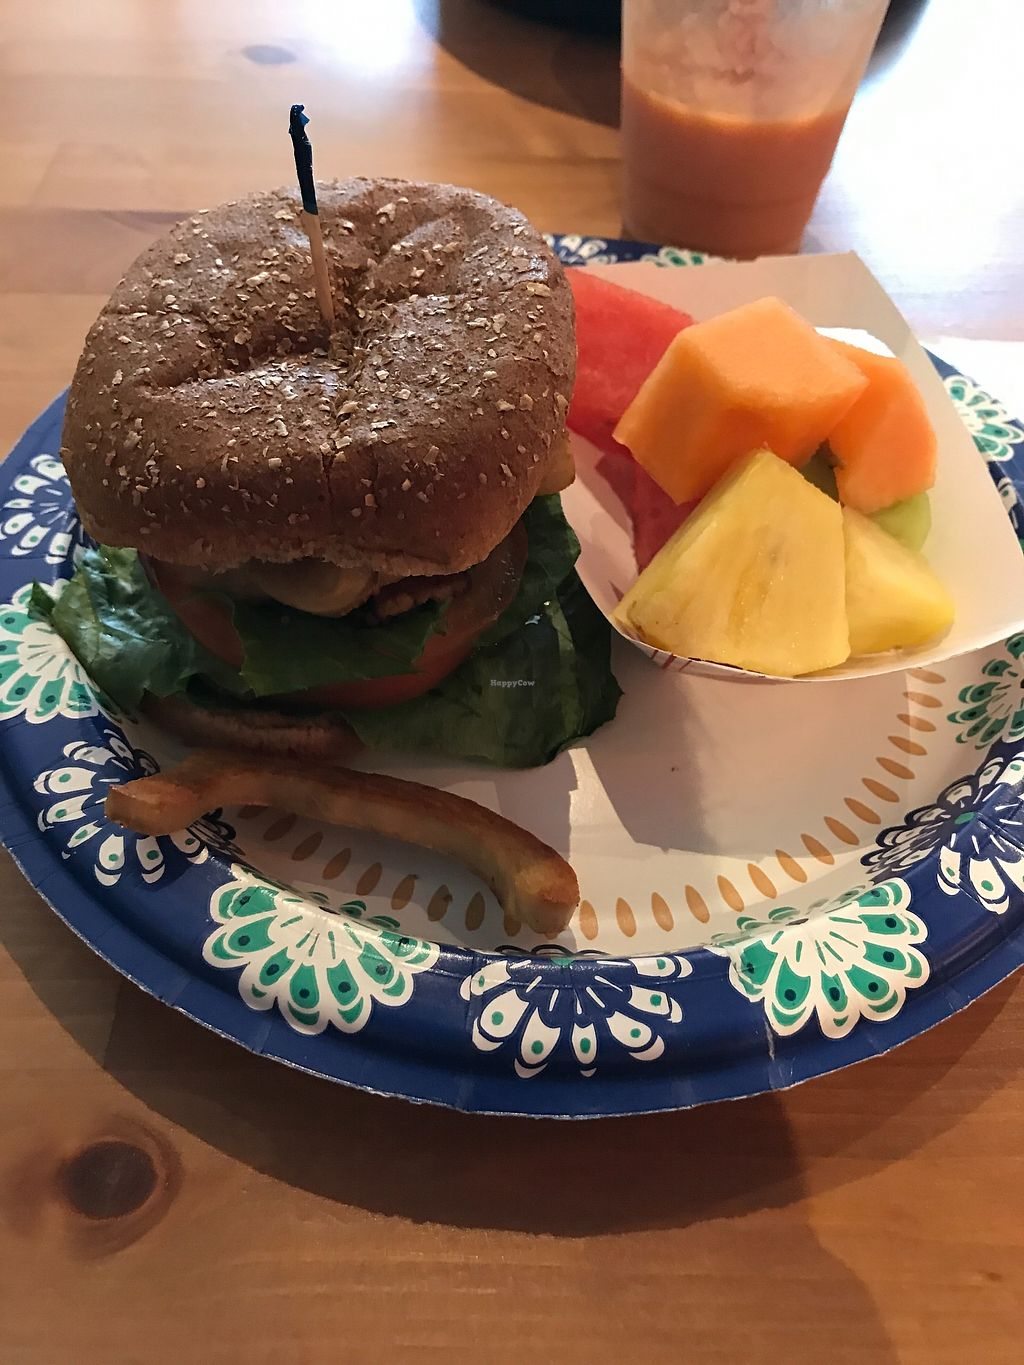 """Photo of DrinkabiliTea Cafe  by <a href=""""/members/profile/dragonflytotem"""">dragonflytotem</a> <br/>Tempeh BLT with fruit side <br/> September 10, 2017  - <a href='/contact/abuse/image/62758/303065'>Report</a>"""